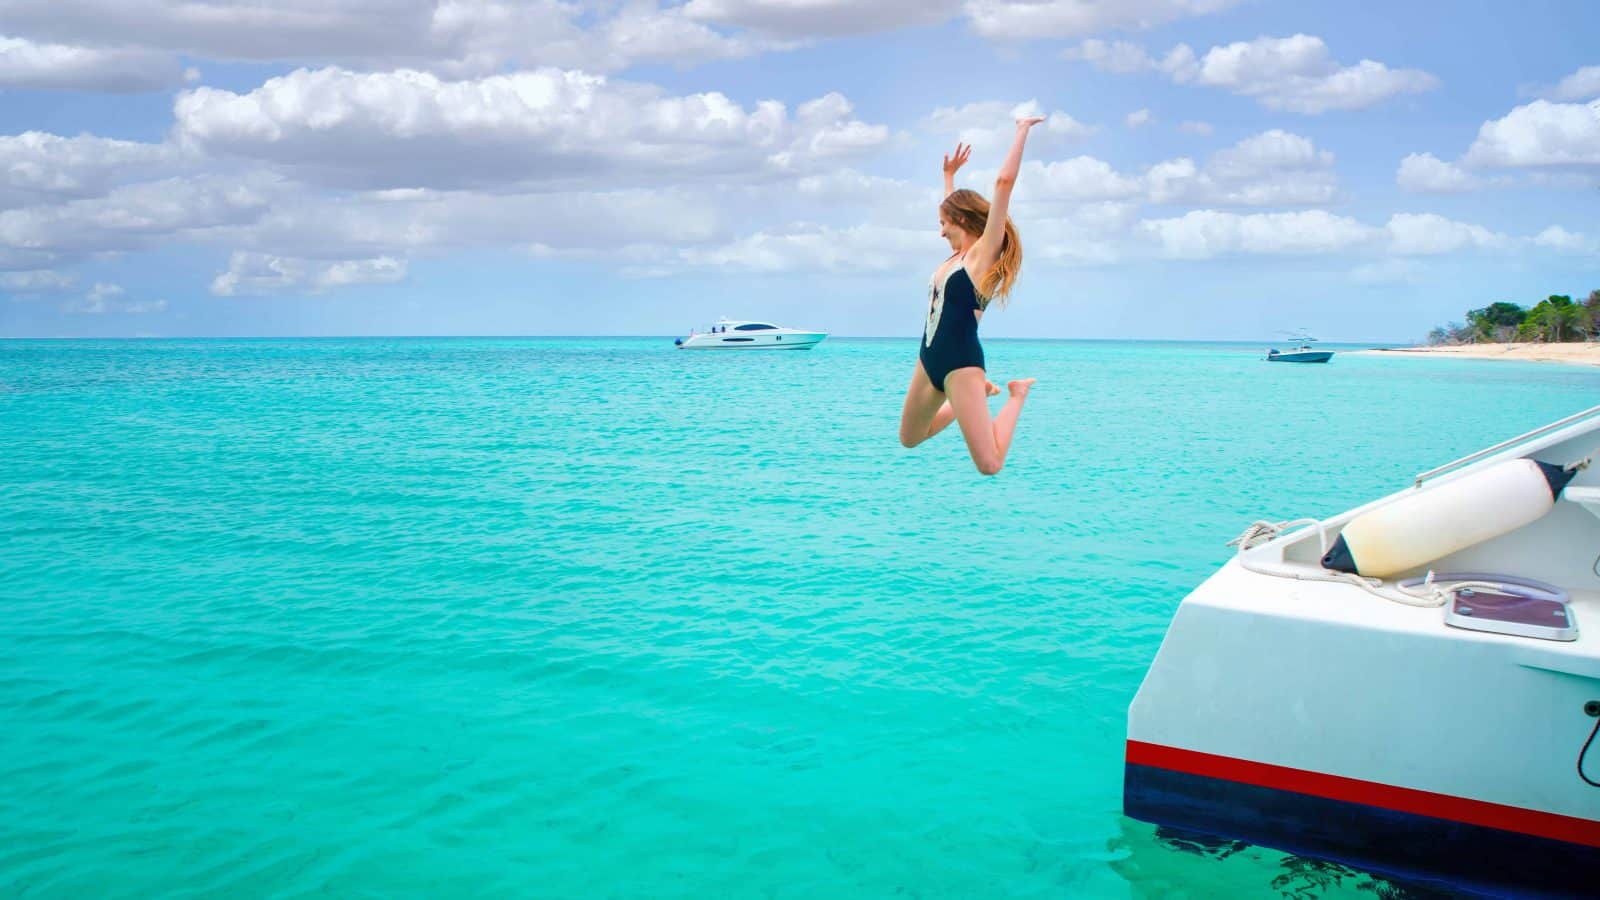 florida packing list girl jumping off boat